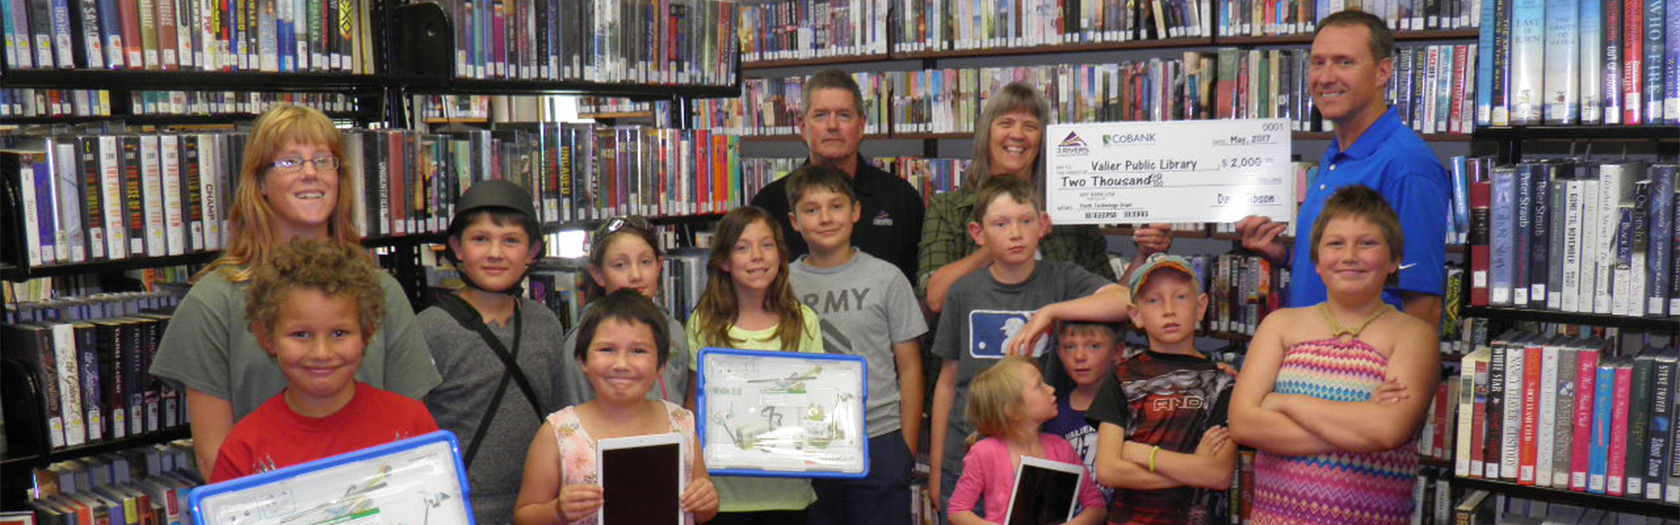 3 Rivers Youth Technology Grant